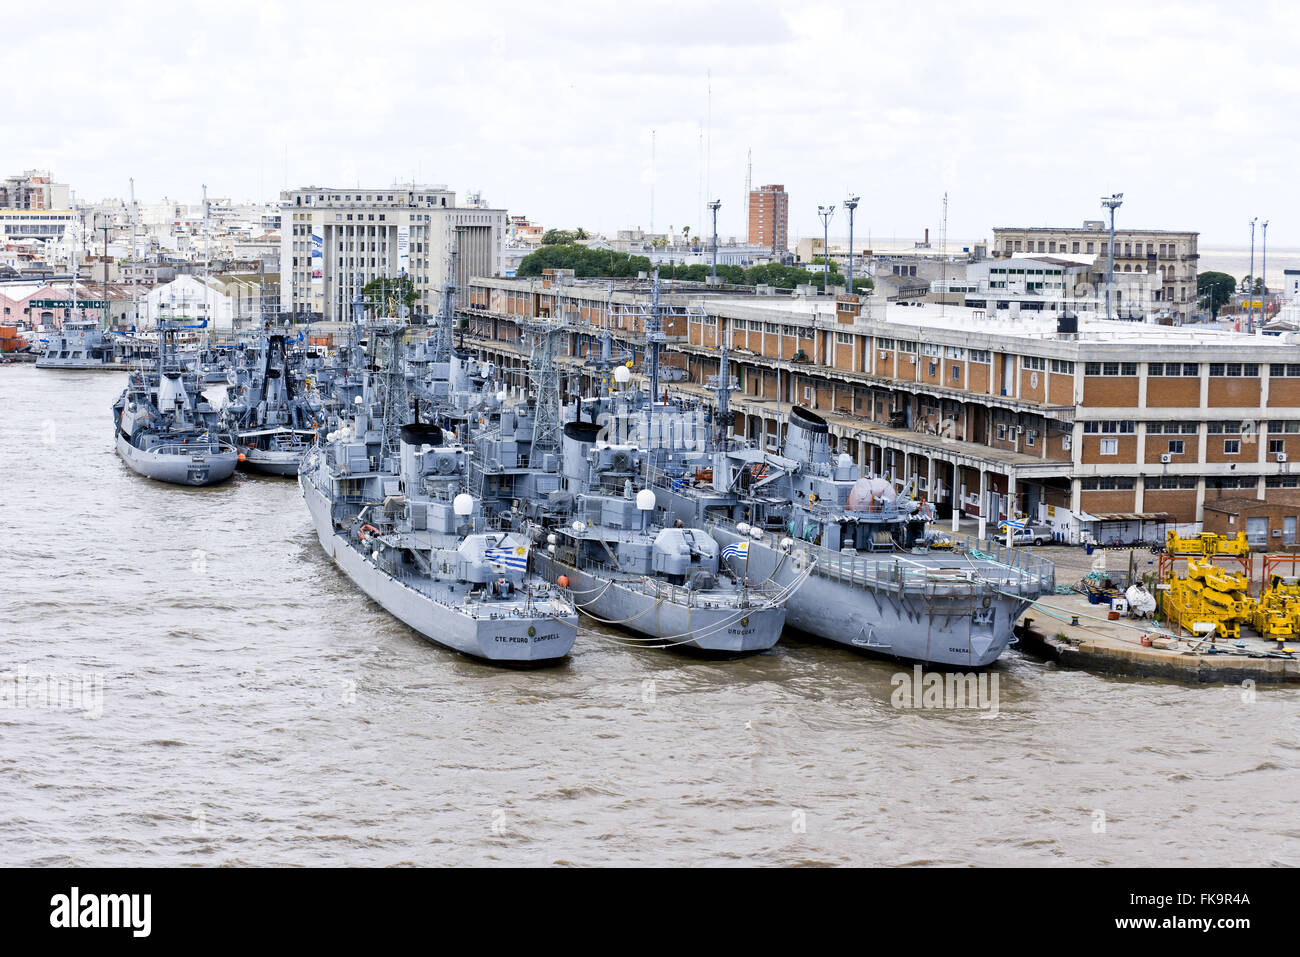 Port of Montevideo - warships - Stock Image